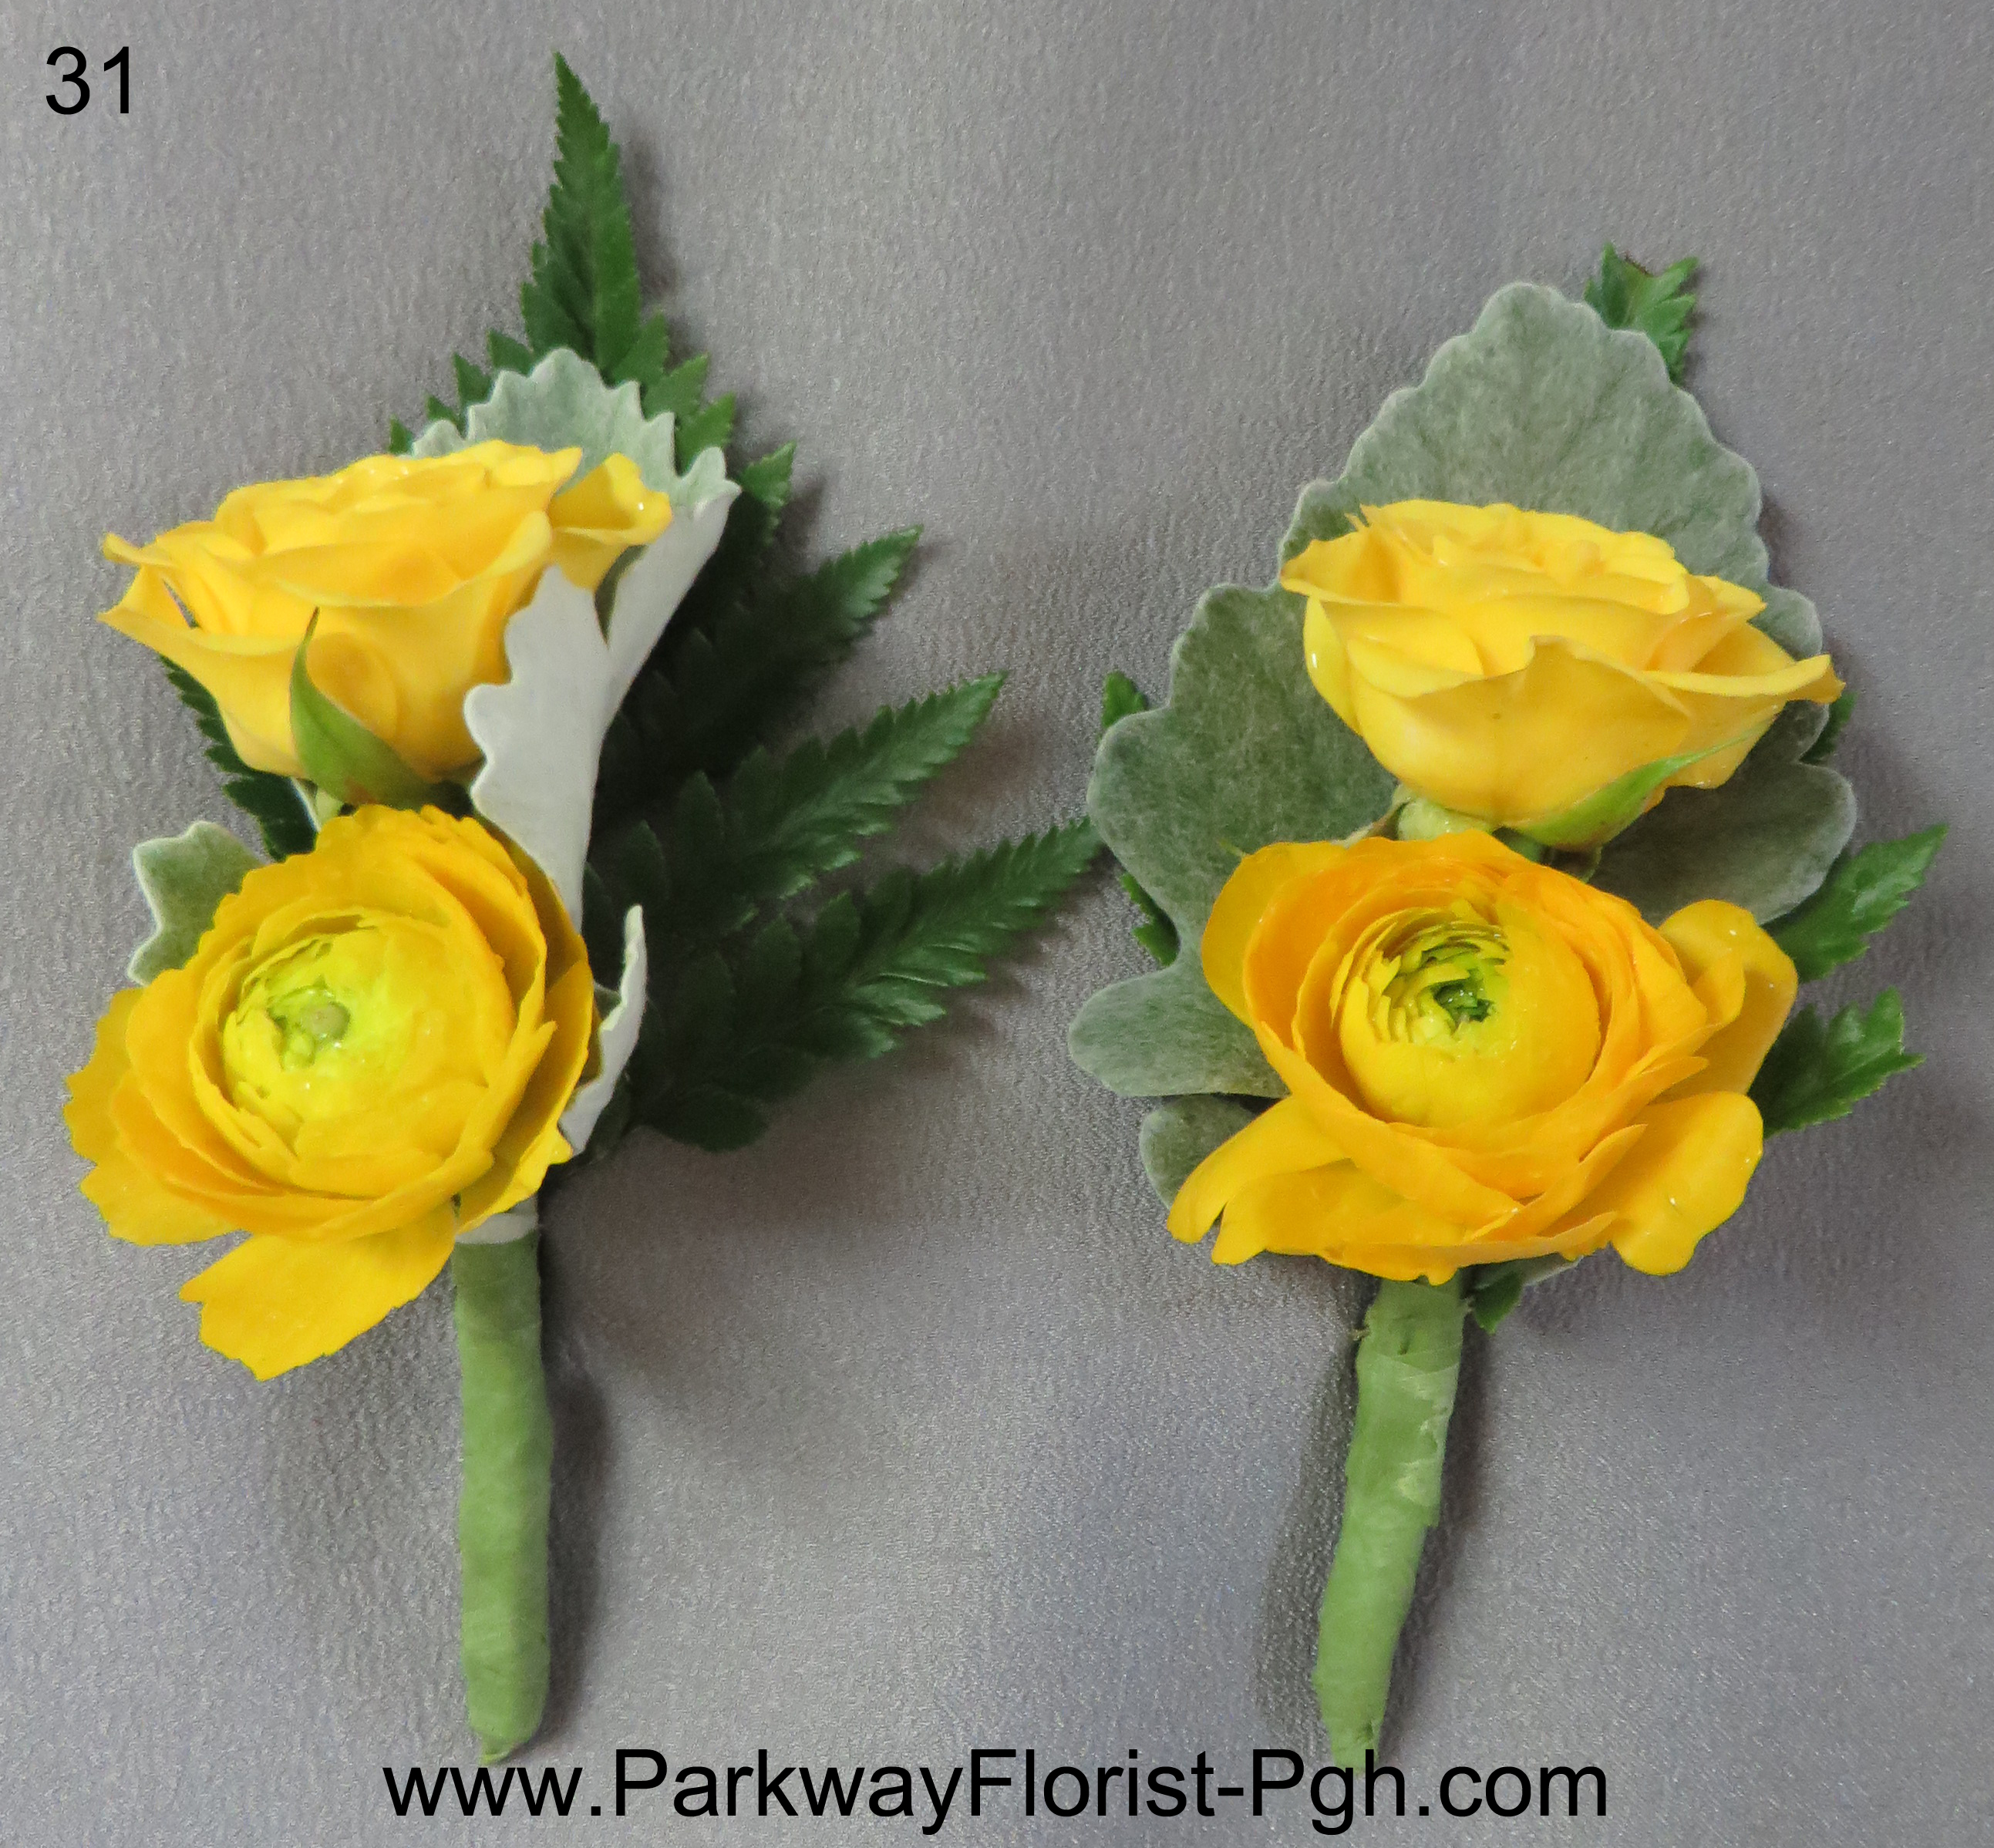 Flowers for men boutonnieres parkway florist pittsburgh blog bout 31 izmirmasajfo